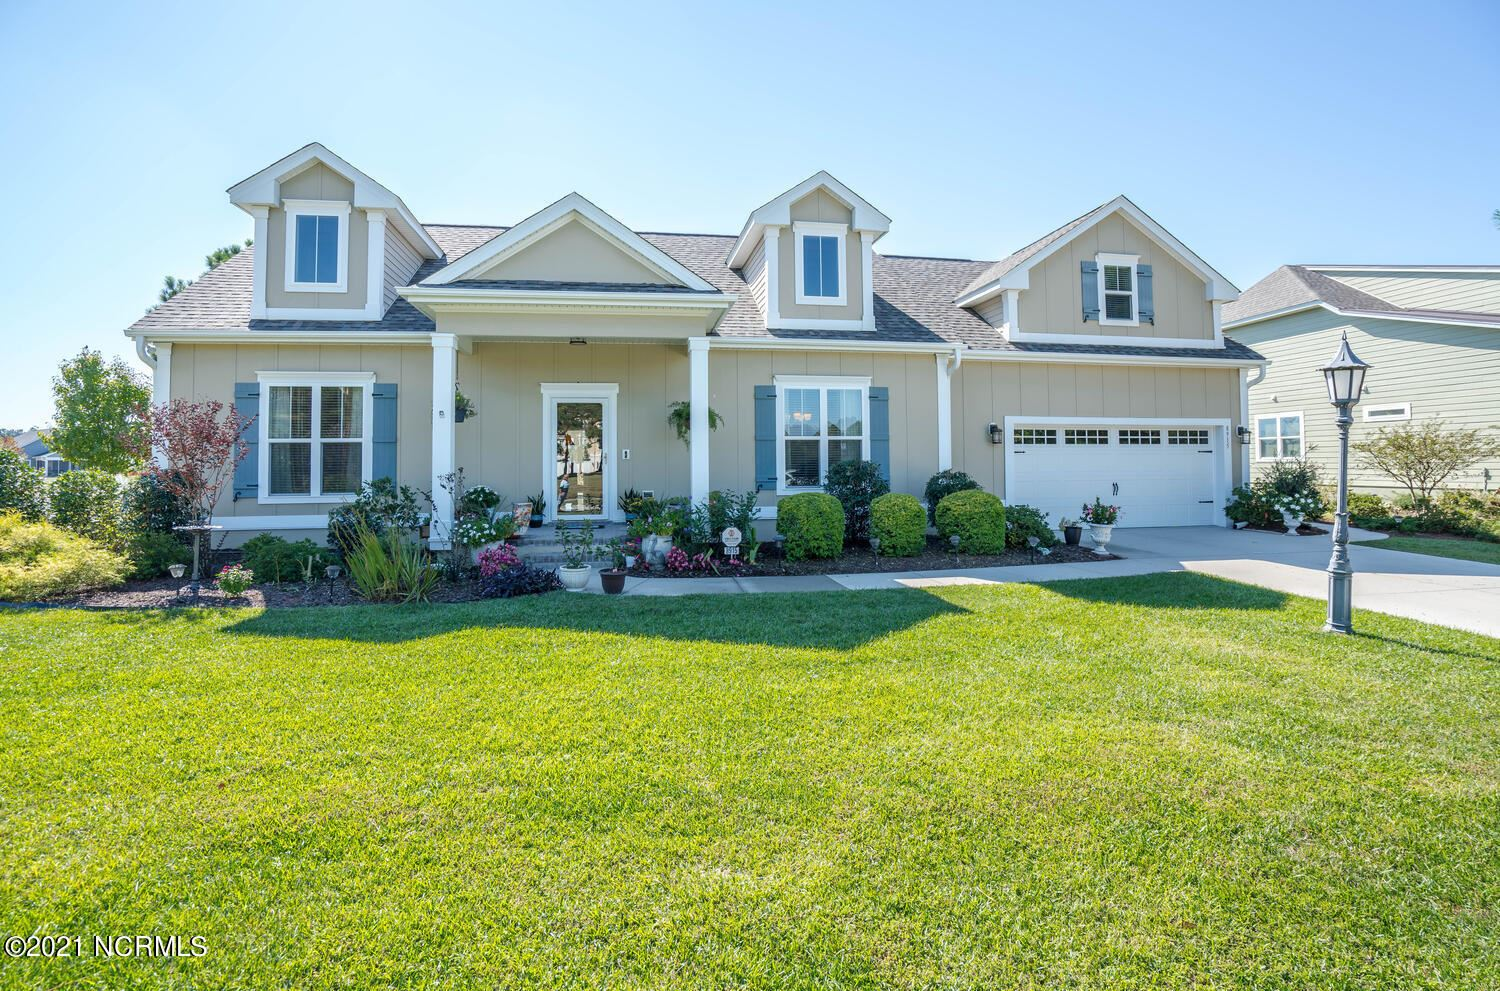 Photo of 8915 Chesterfield Drive NW, Calabash, NC 28467 (MLS # 100296030)